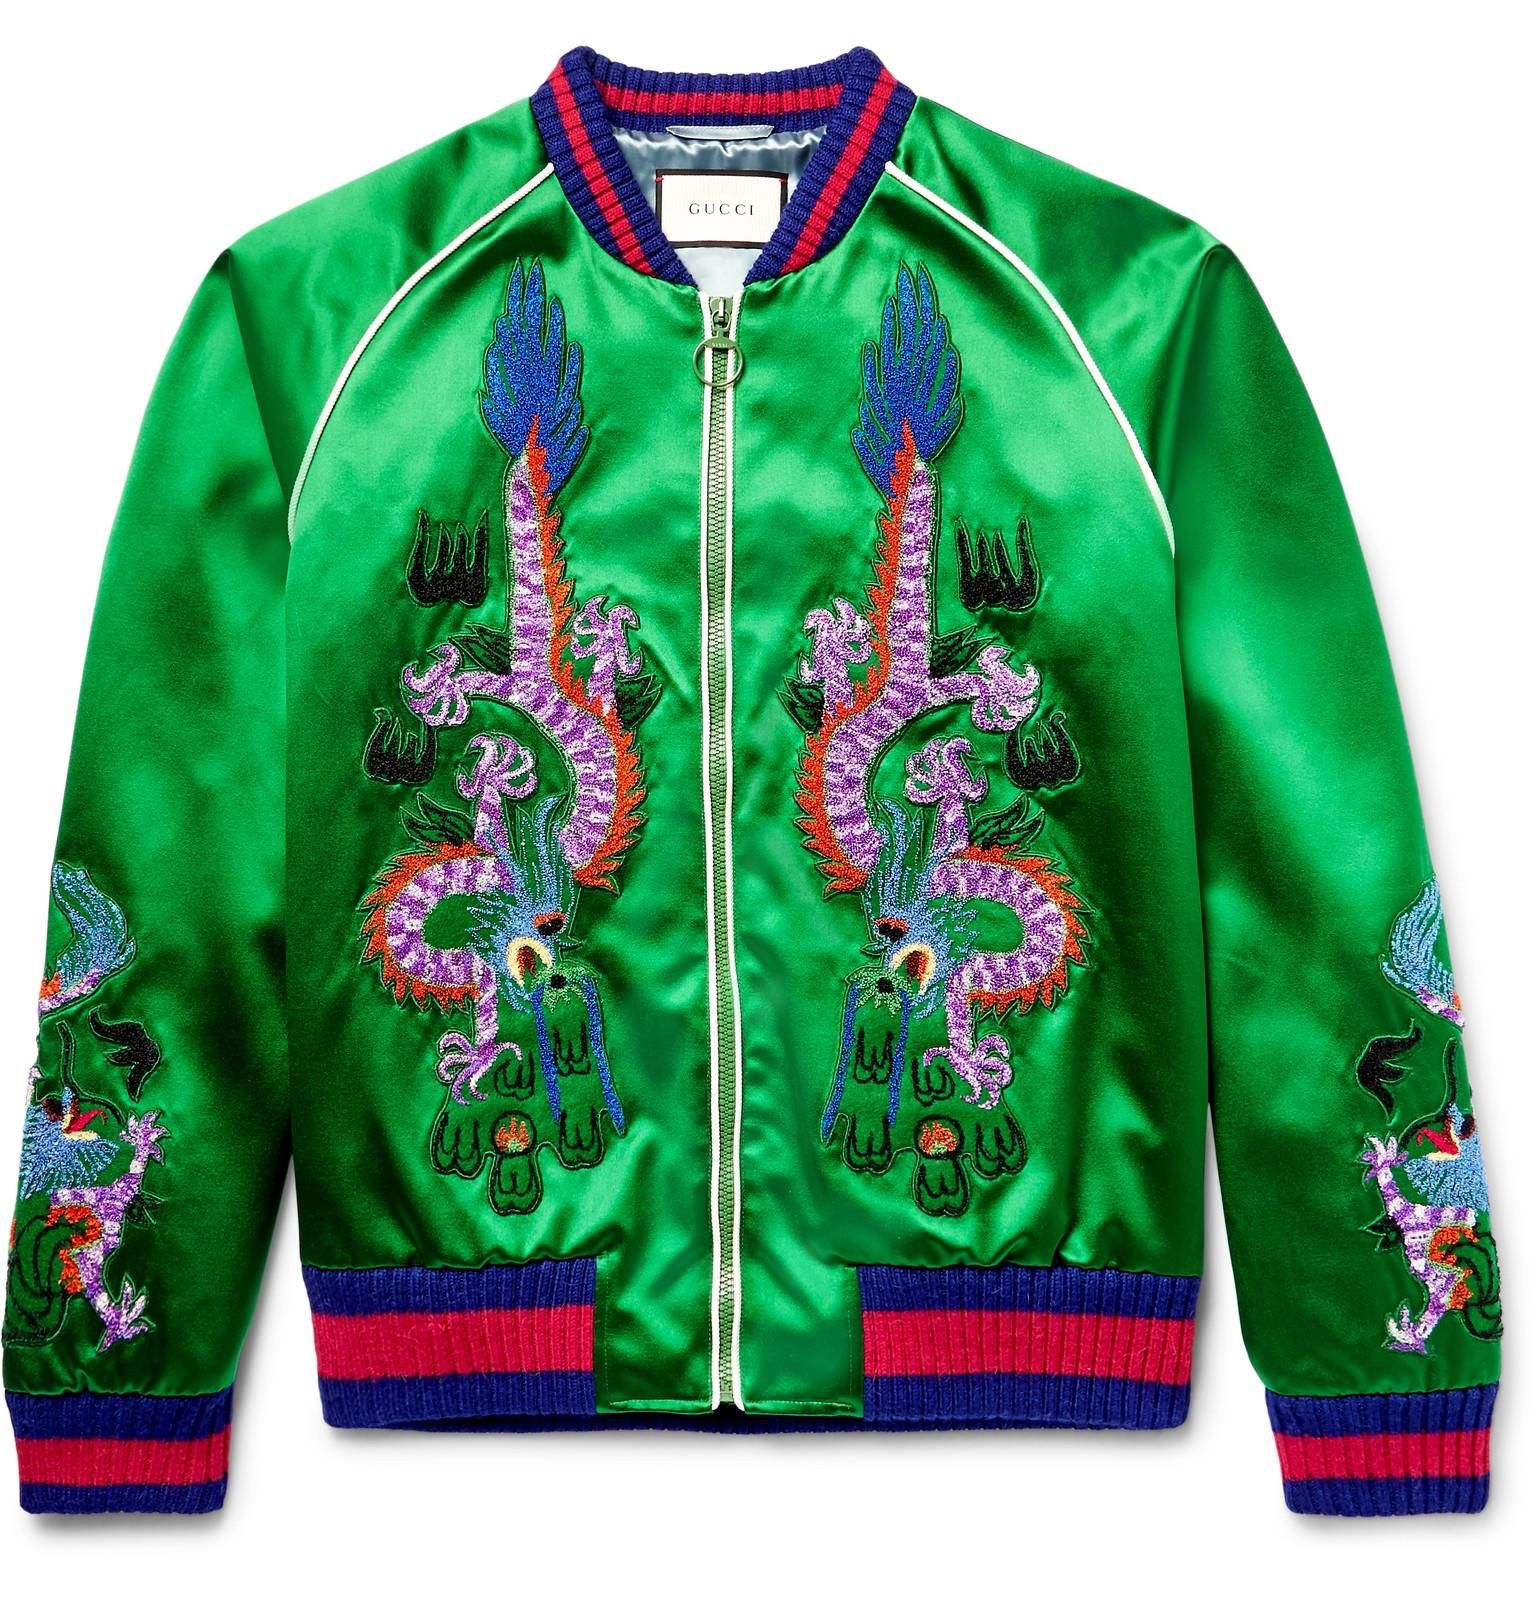 cfdc60d42 gucci bomber jackets with dragons | Gucci Appliquéd Silk-satin Bomber Jacket  in Green for Men | Lyst